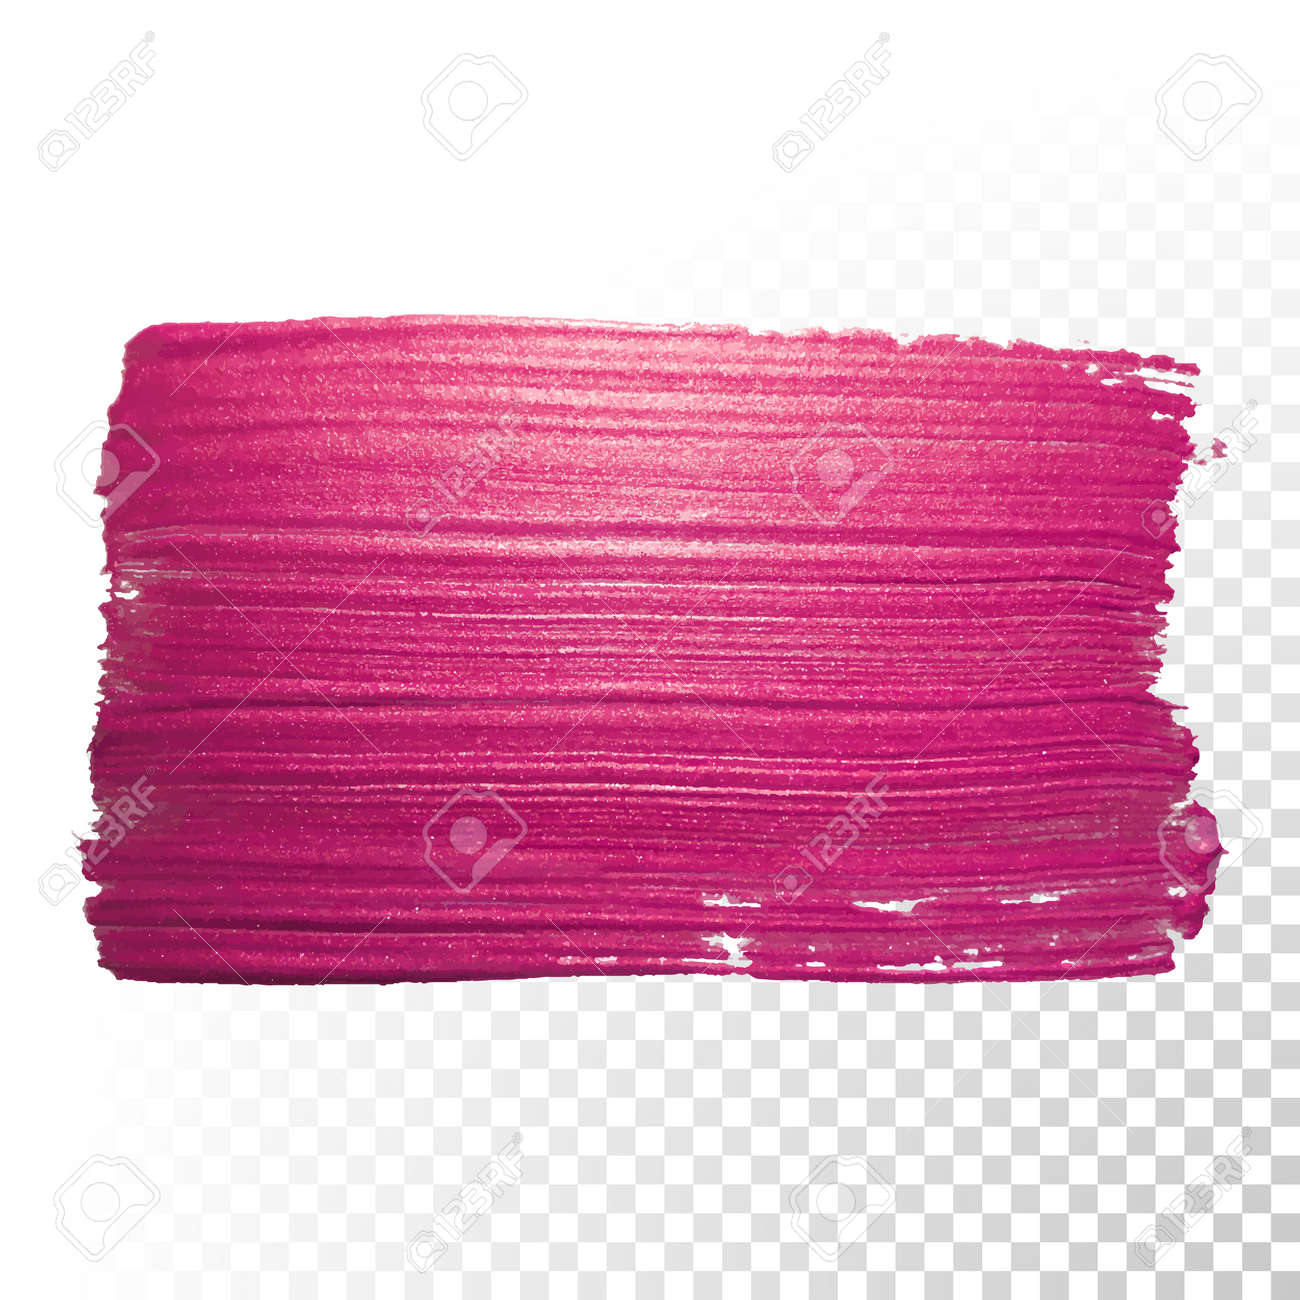 Vector pink watercolor brush stroke. Abstract polish splash trace shape. Red oil paint smear line on transparent background - 52868130